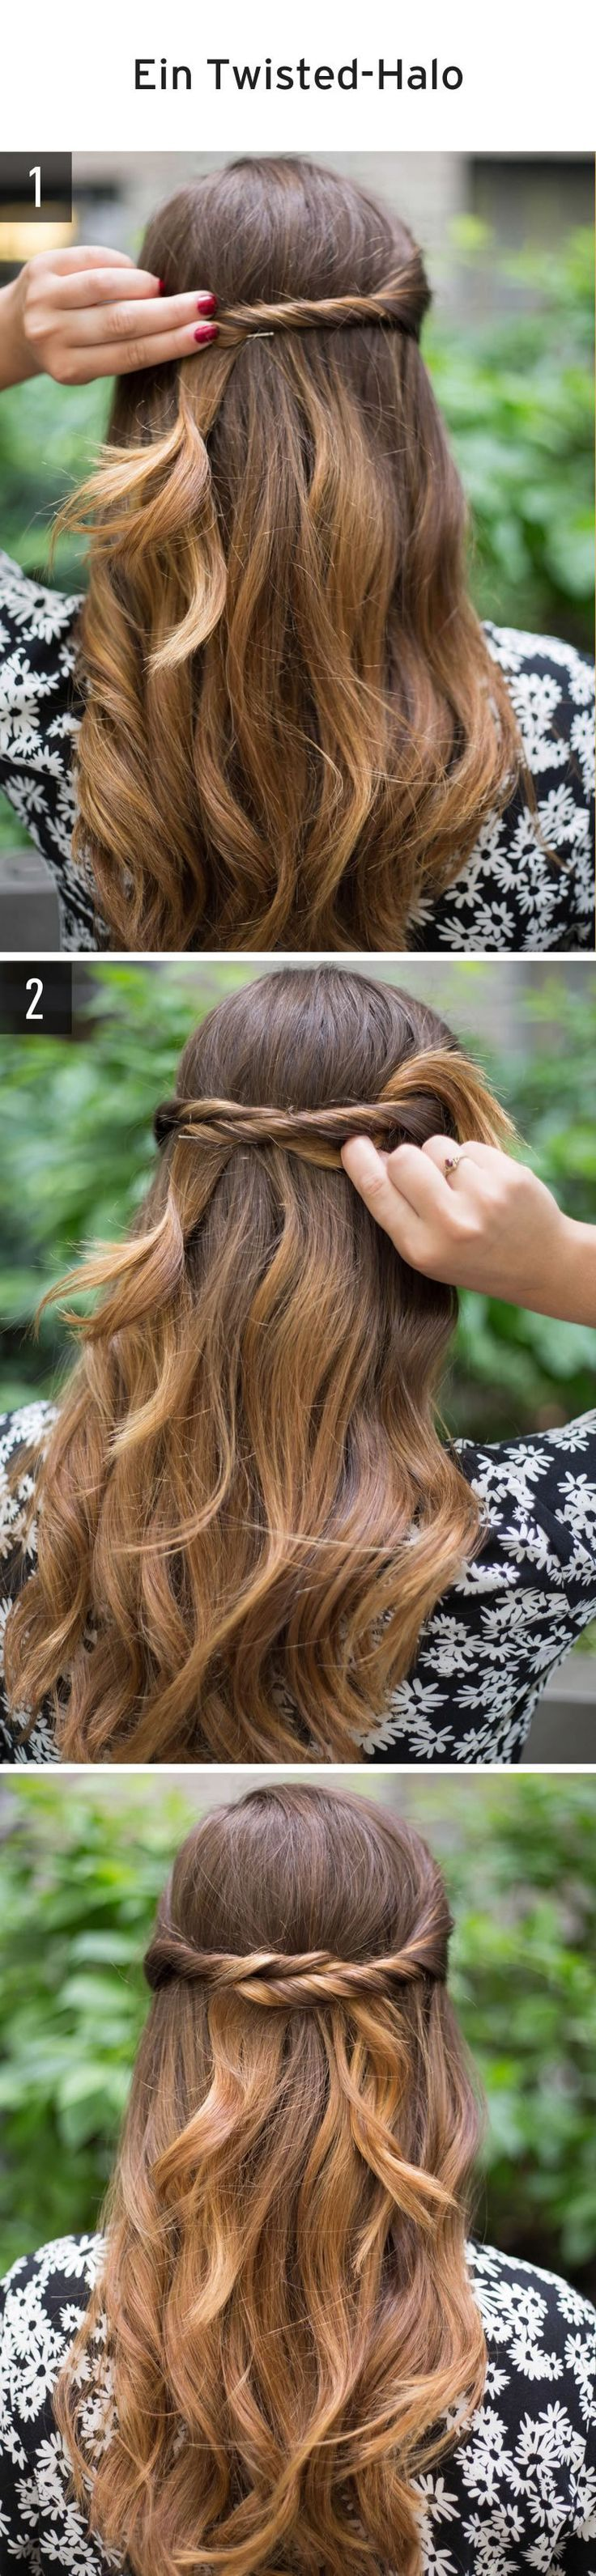 Braided Hairstyles for Spring 2017: Simple, messy and straight hair   - Μαλλιά